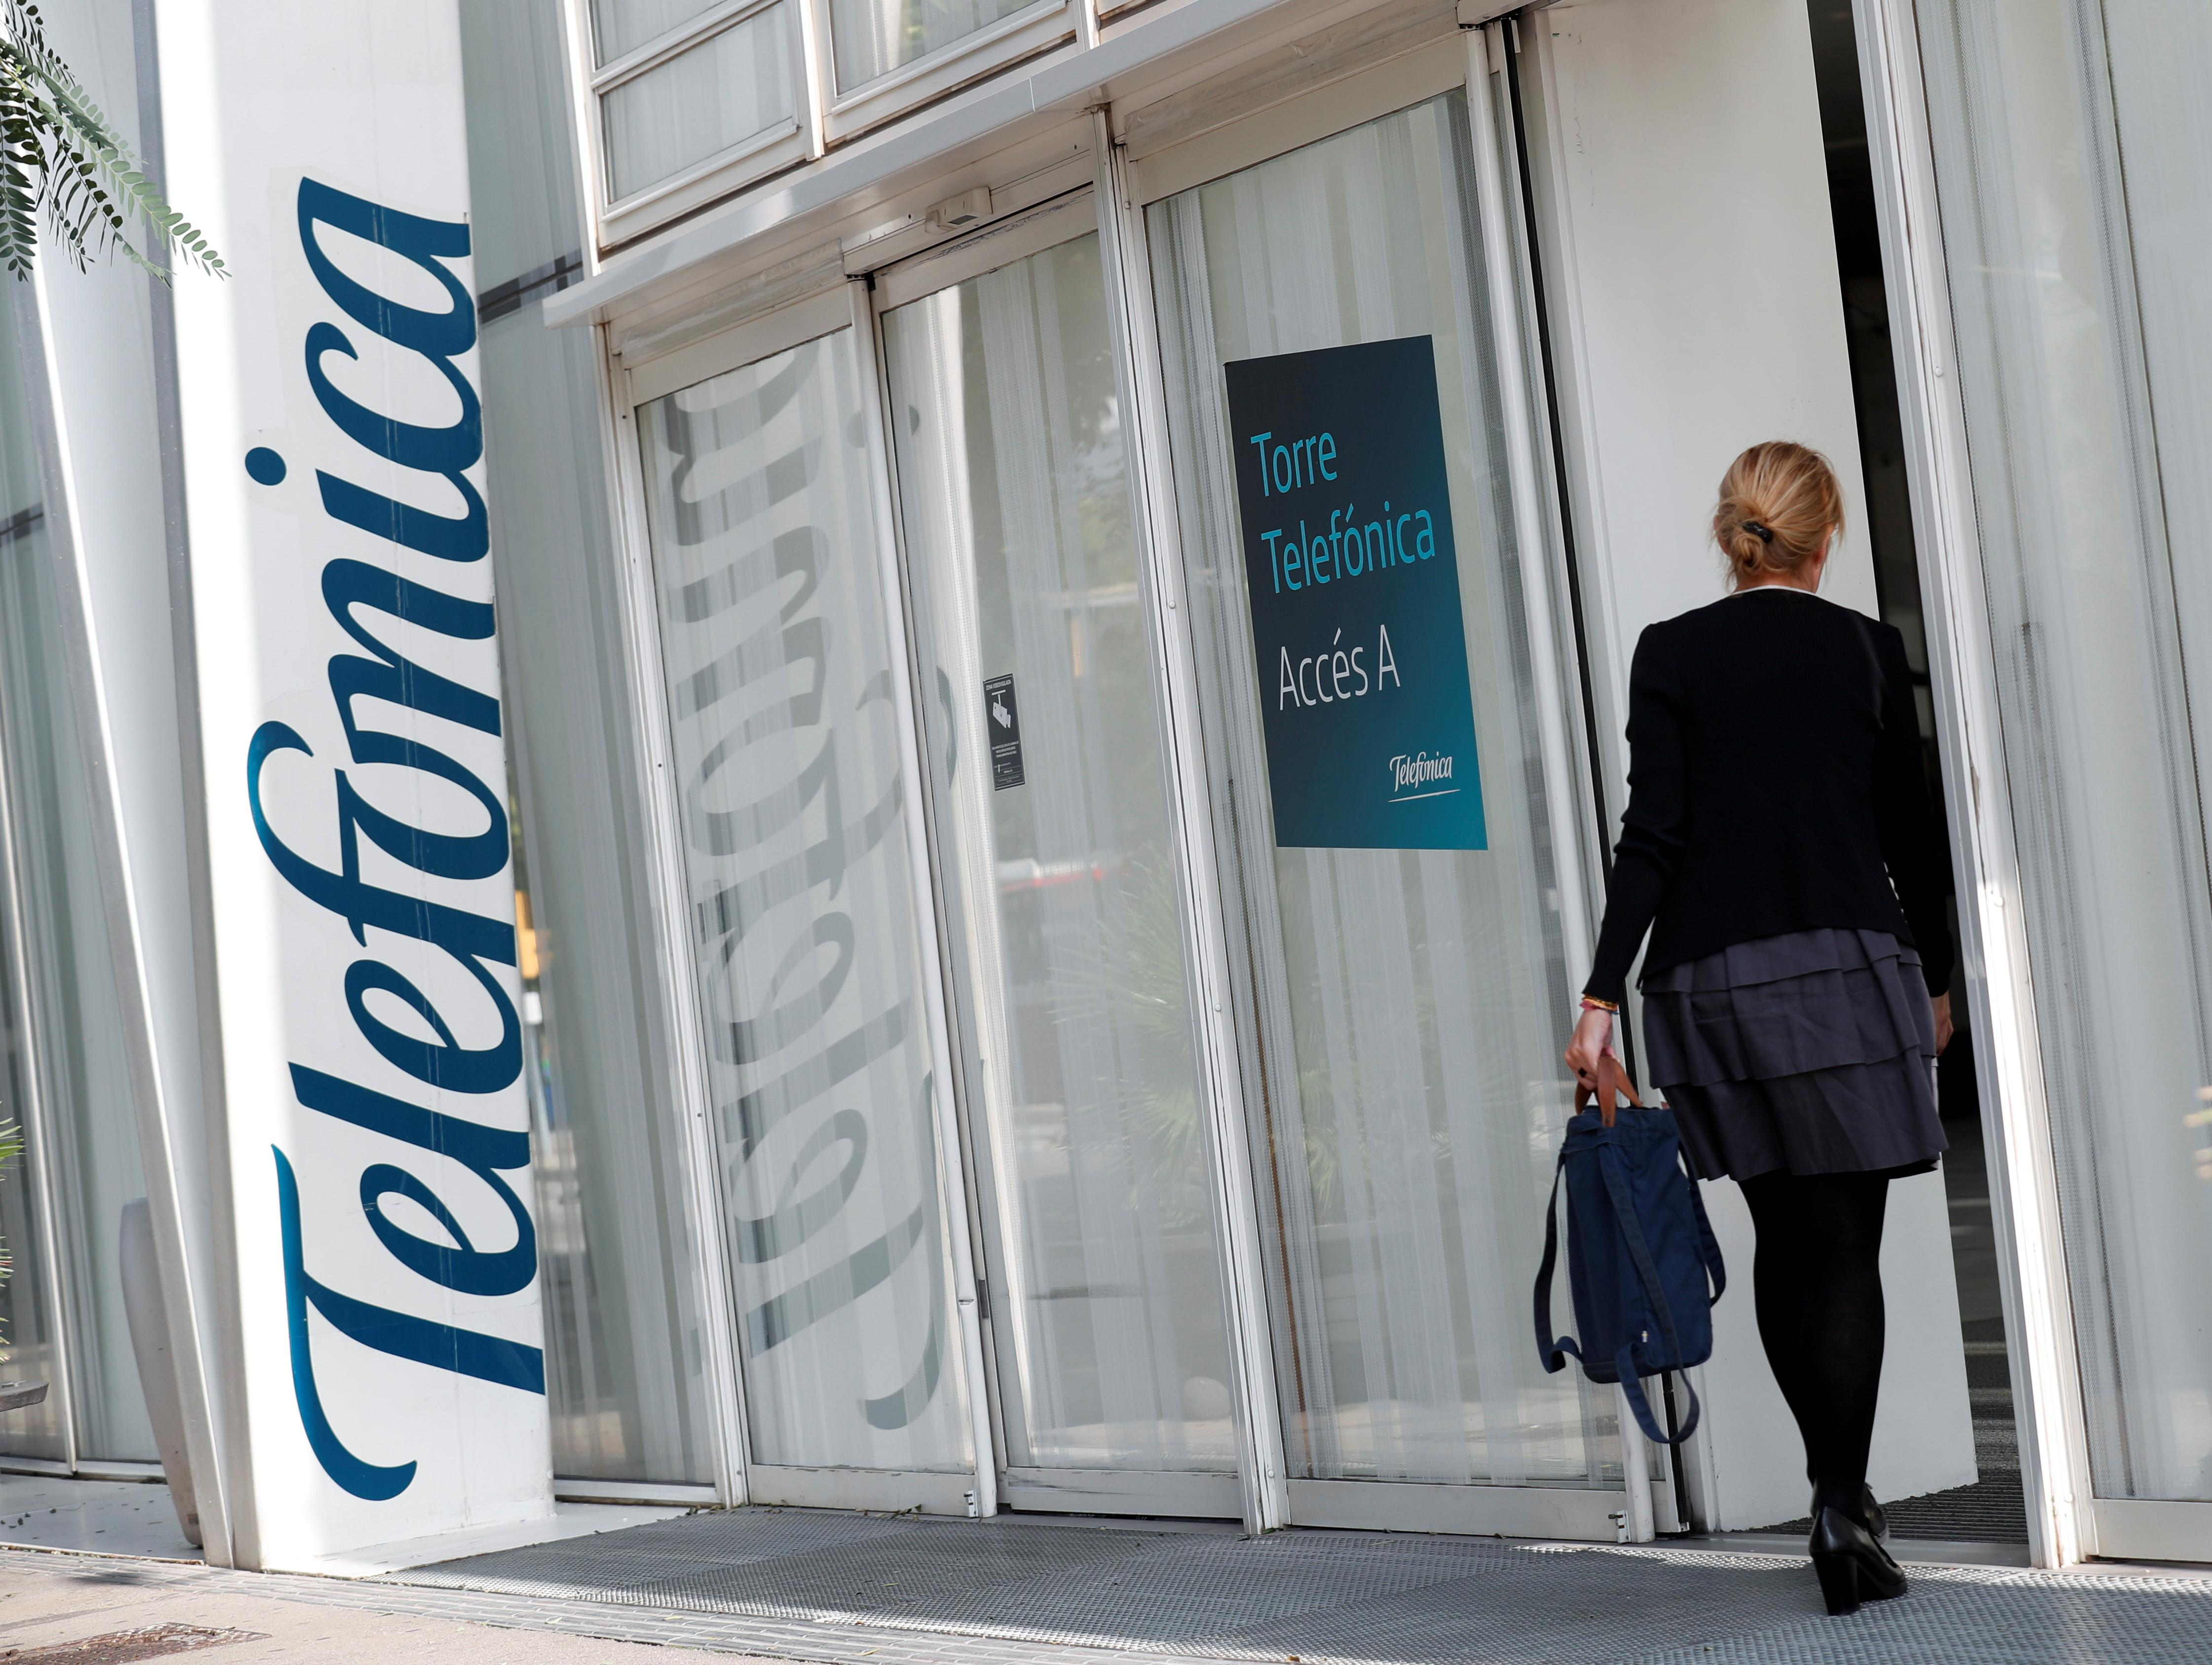 Telefonica to choose another supplier alongside Huawei for 5G network